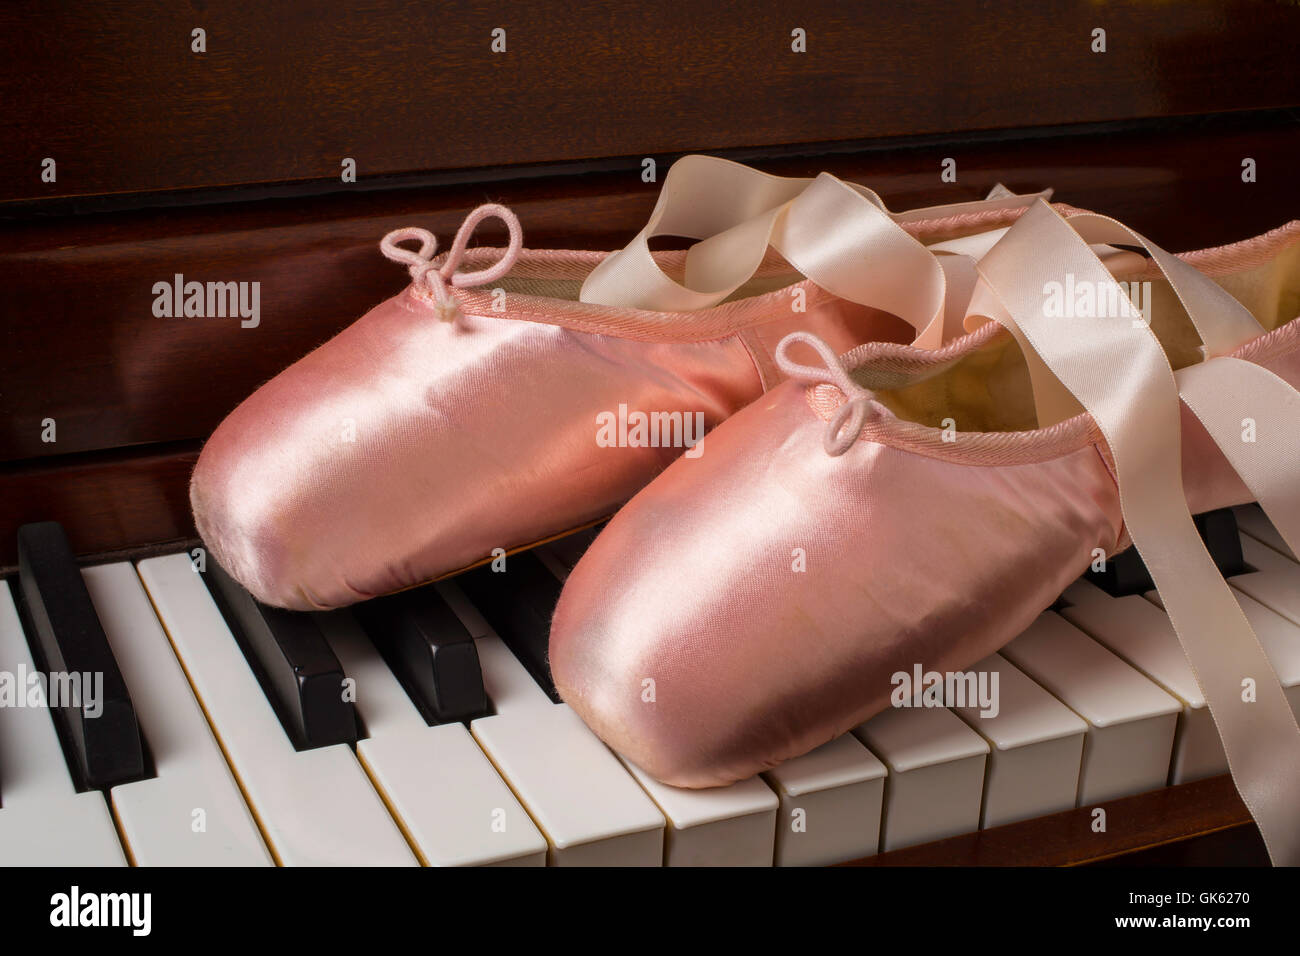 Ballet Shoes On Piano Keys - Stock Image